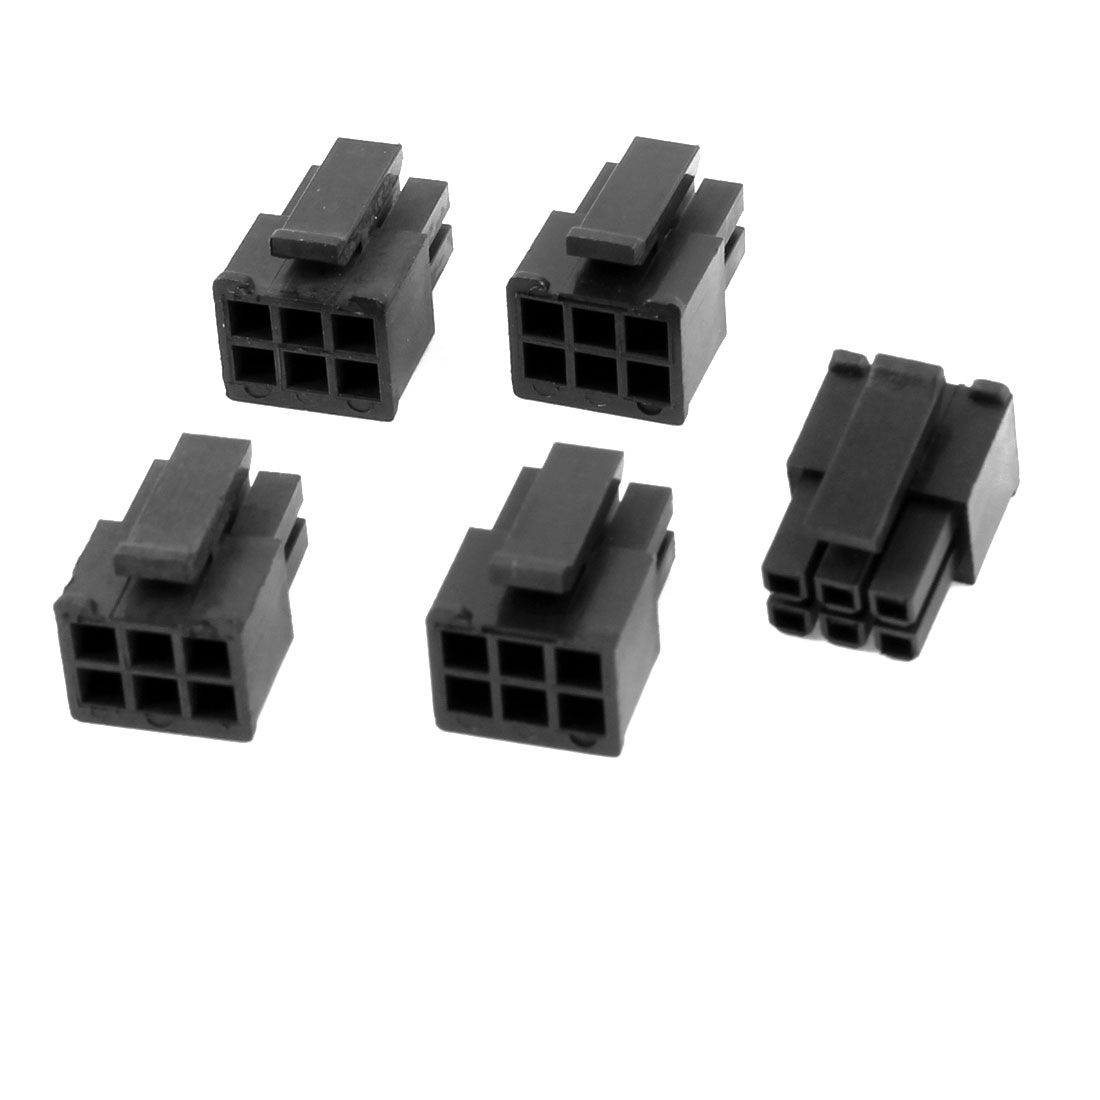 5 Pcs Plastic 6 Pin Male Power Supply Module Mini ATX Connector Black